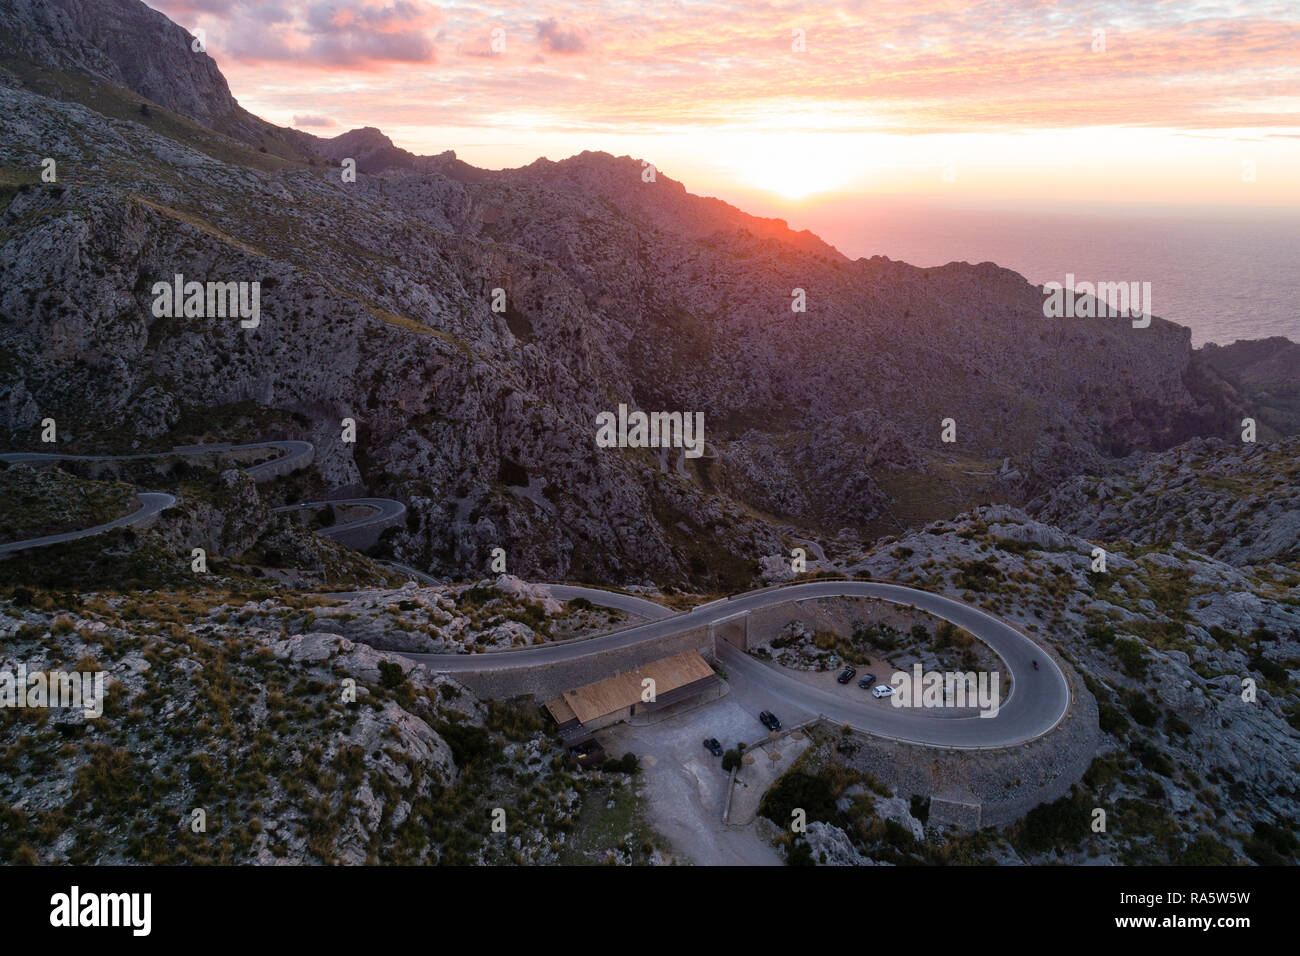 Sa Calobra Road at dusk, one of the most scenic and spectacular roads in the world, Mallorca island, Spain - Stock Image